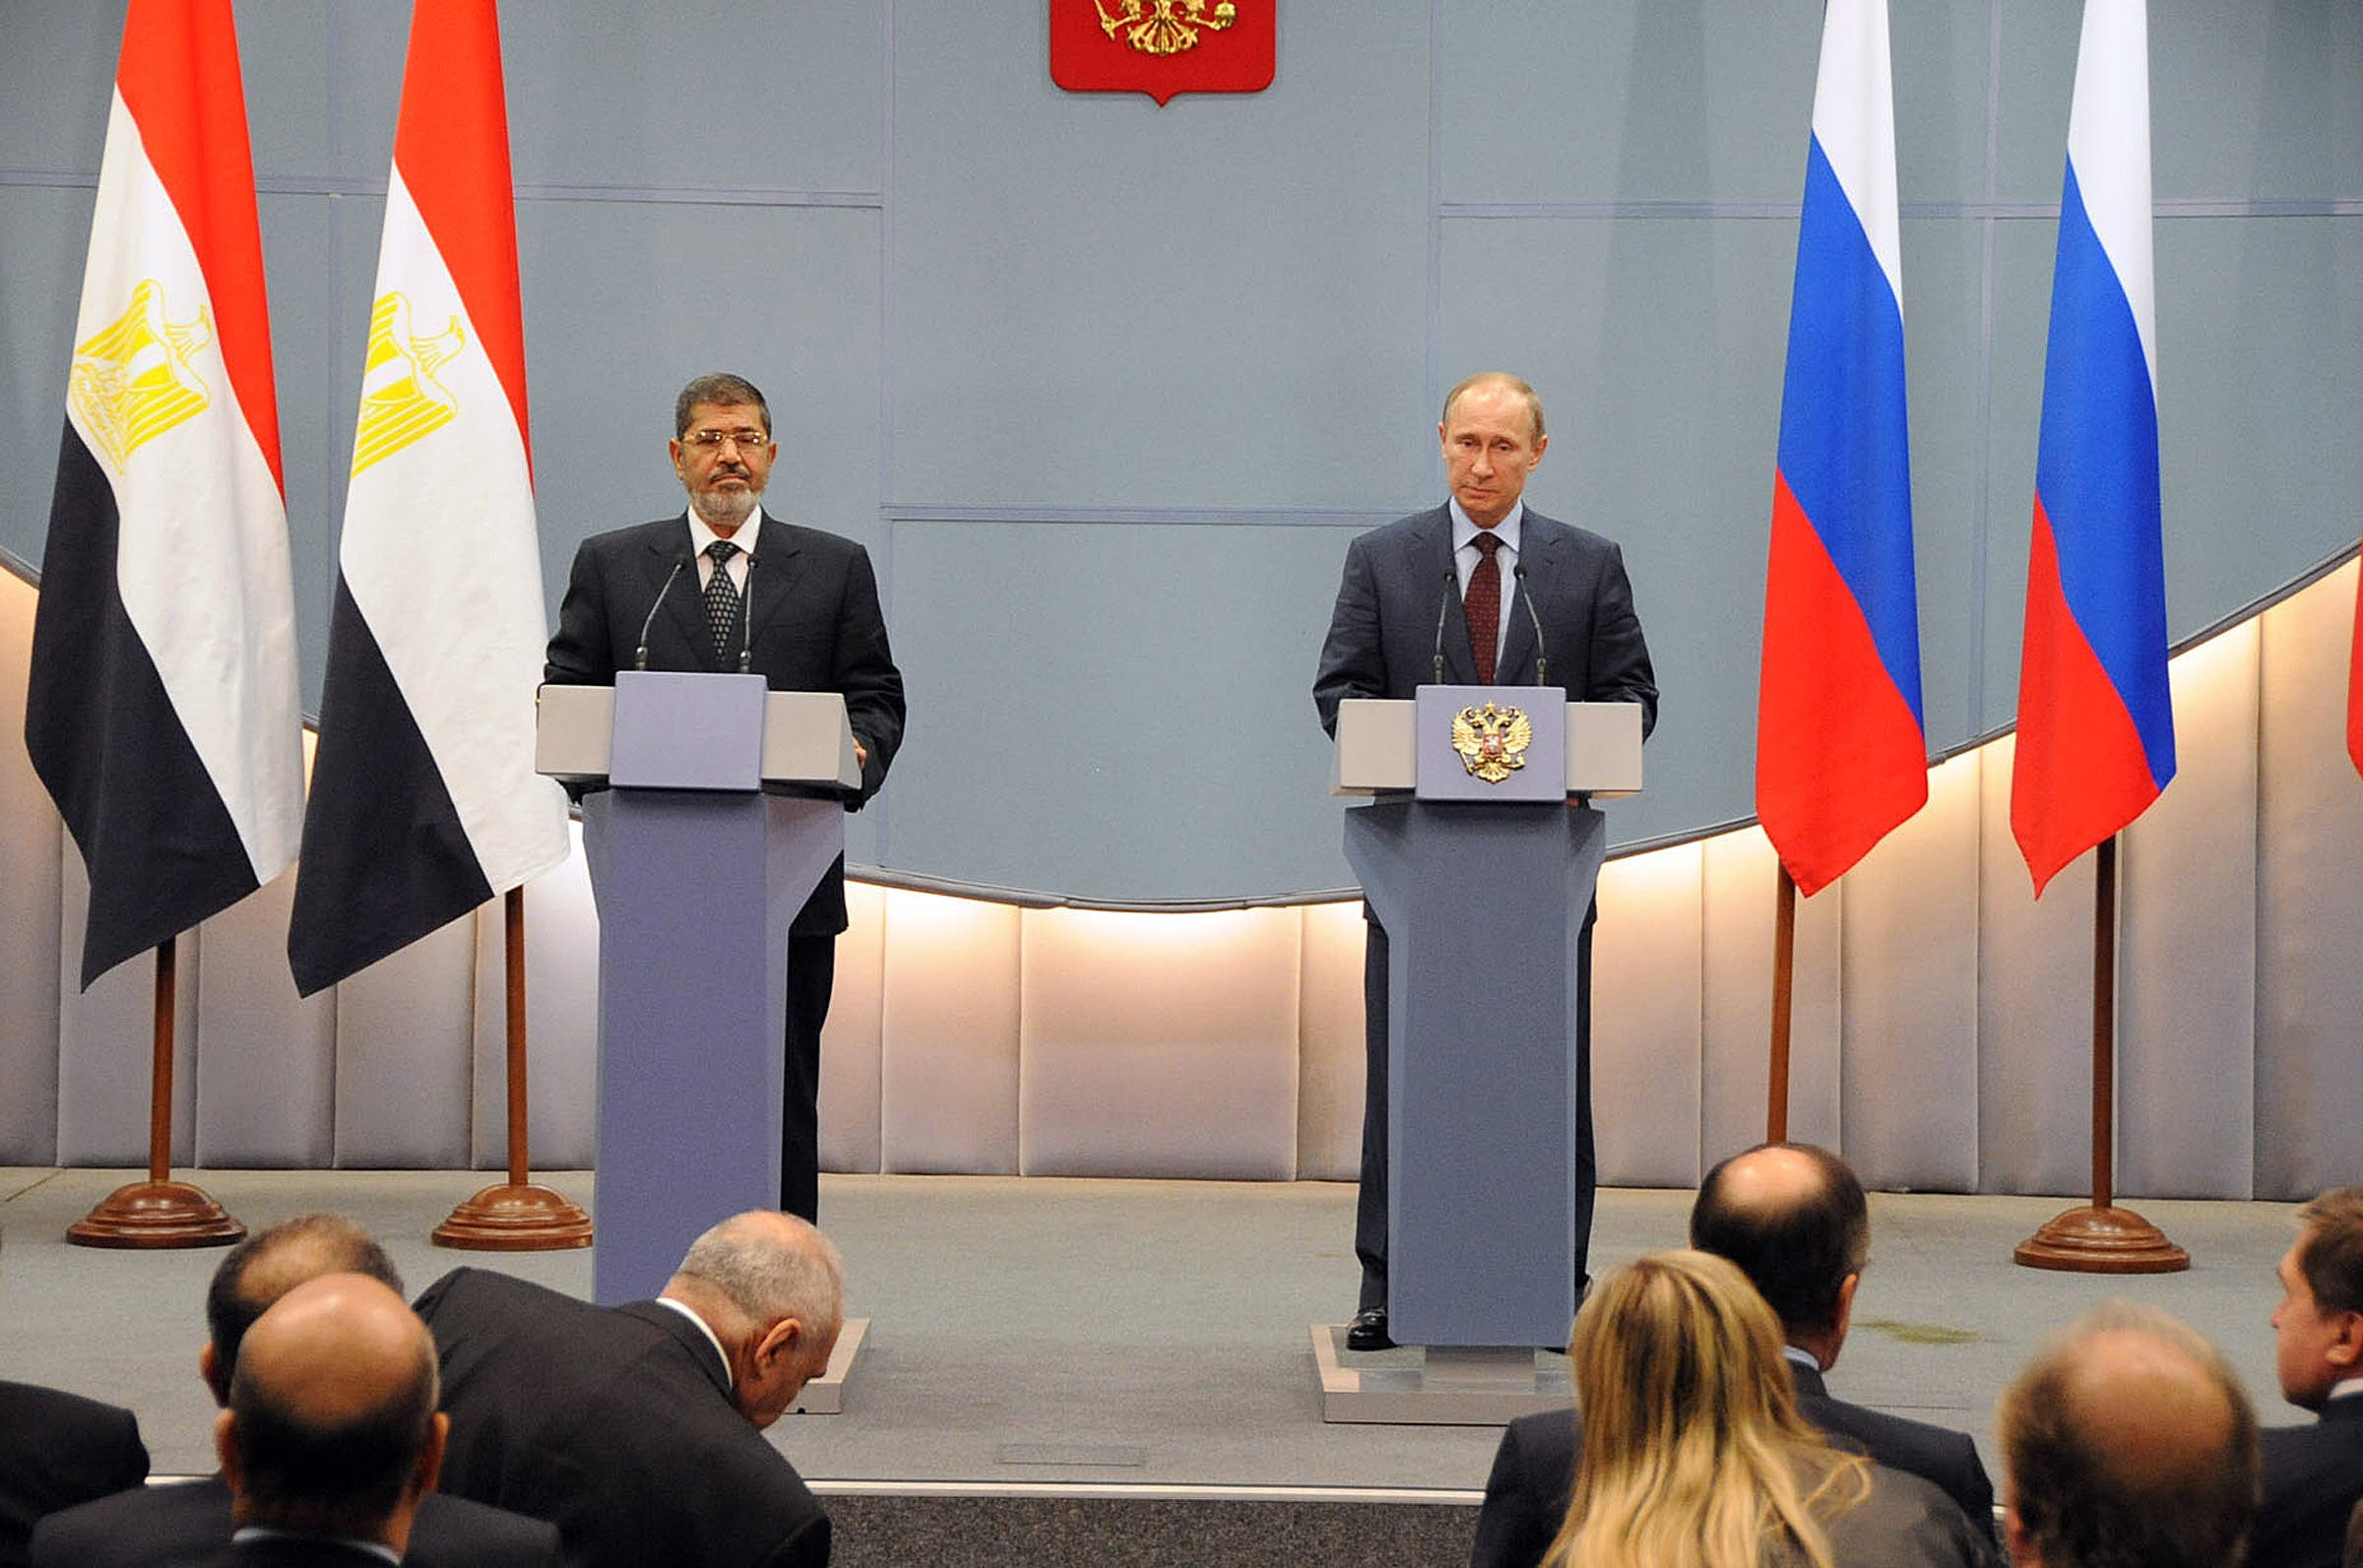 Russia is yet to decide whether it will offer Egypt a $2 billion loan (AFP PHOTO / HO / EGYPTIAN PRESIDENCY PRESS OFFICE)